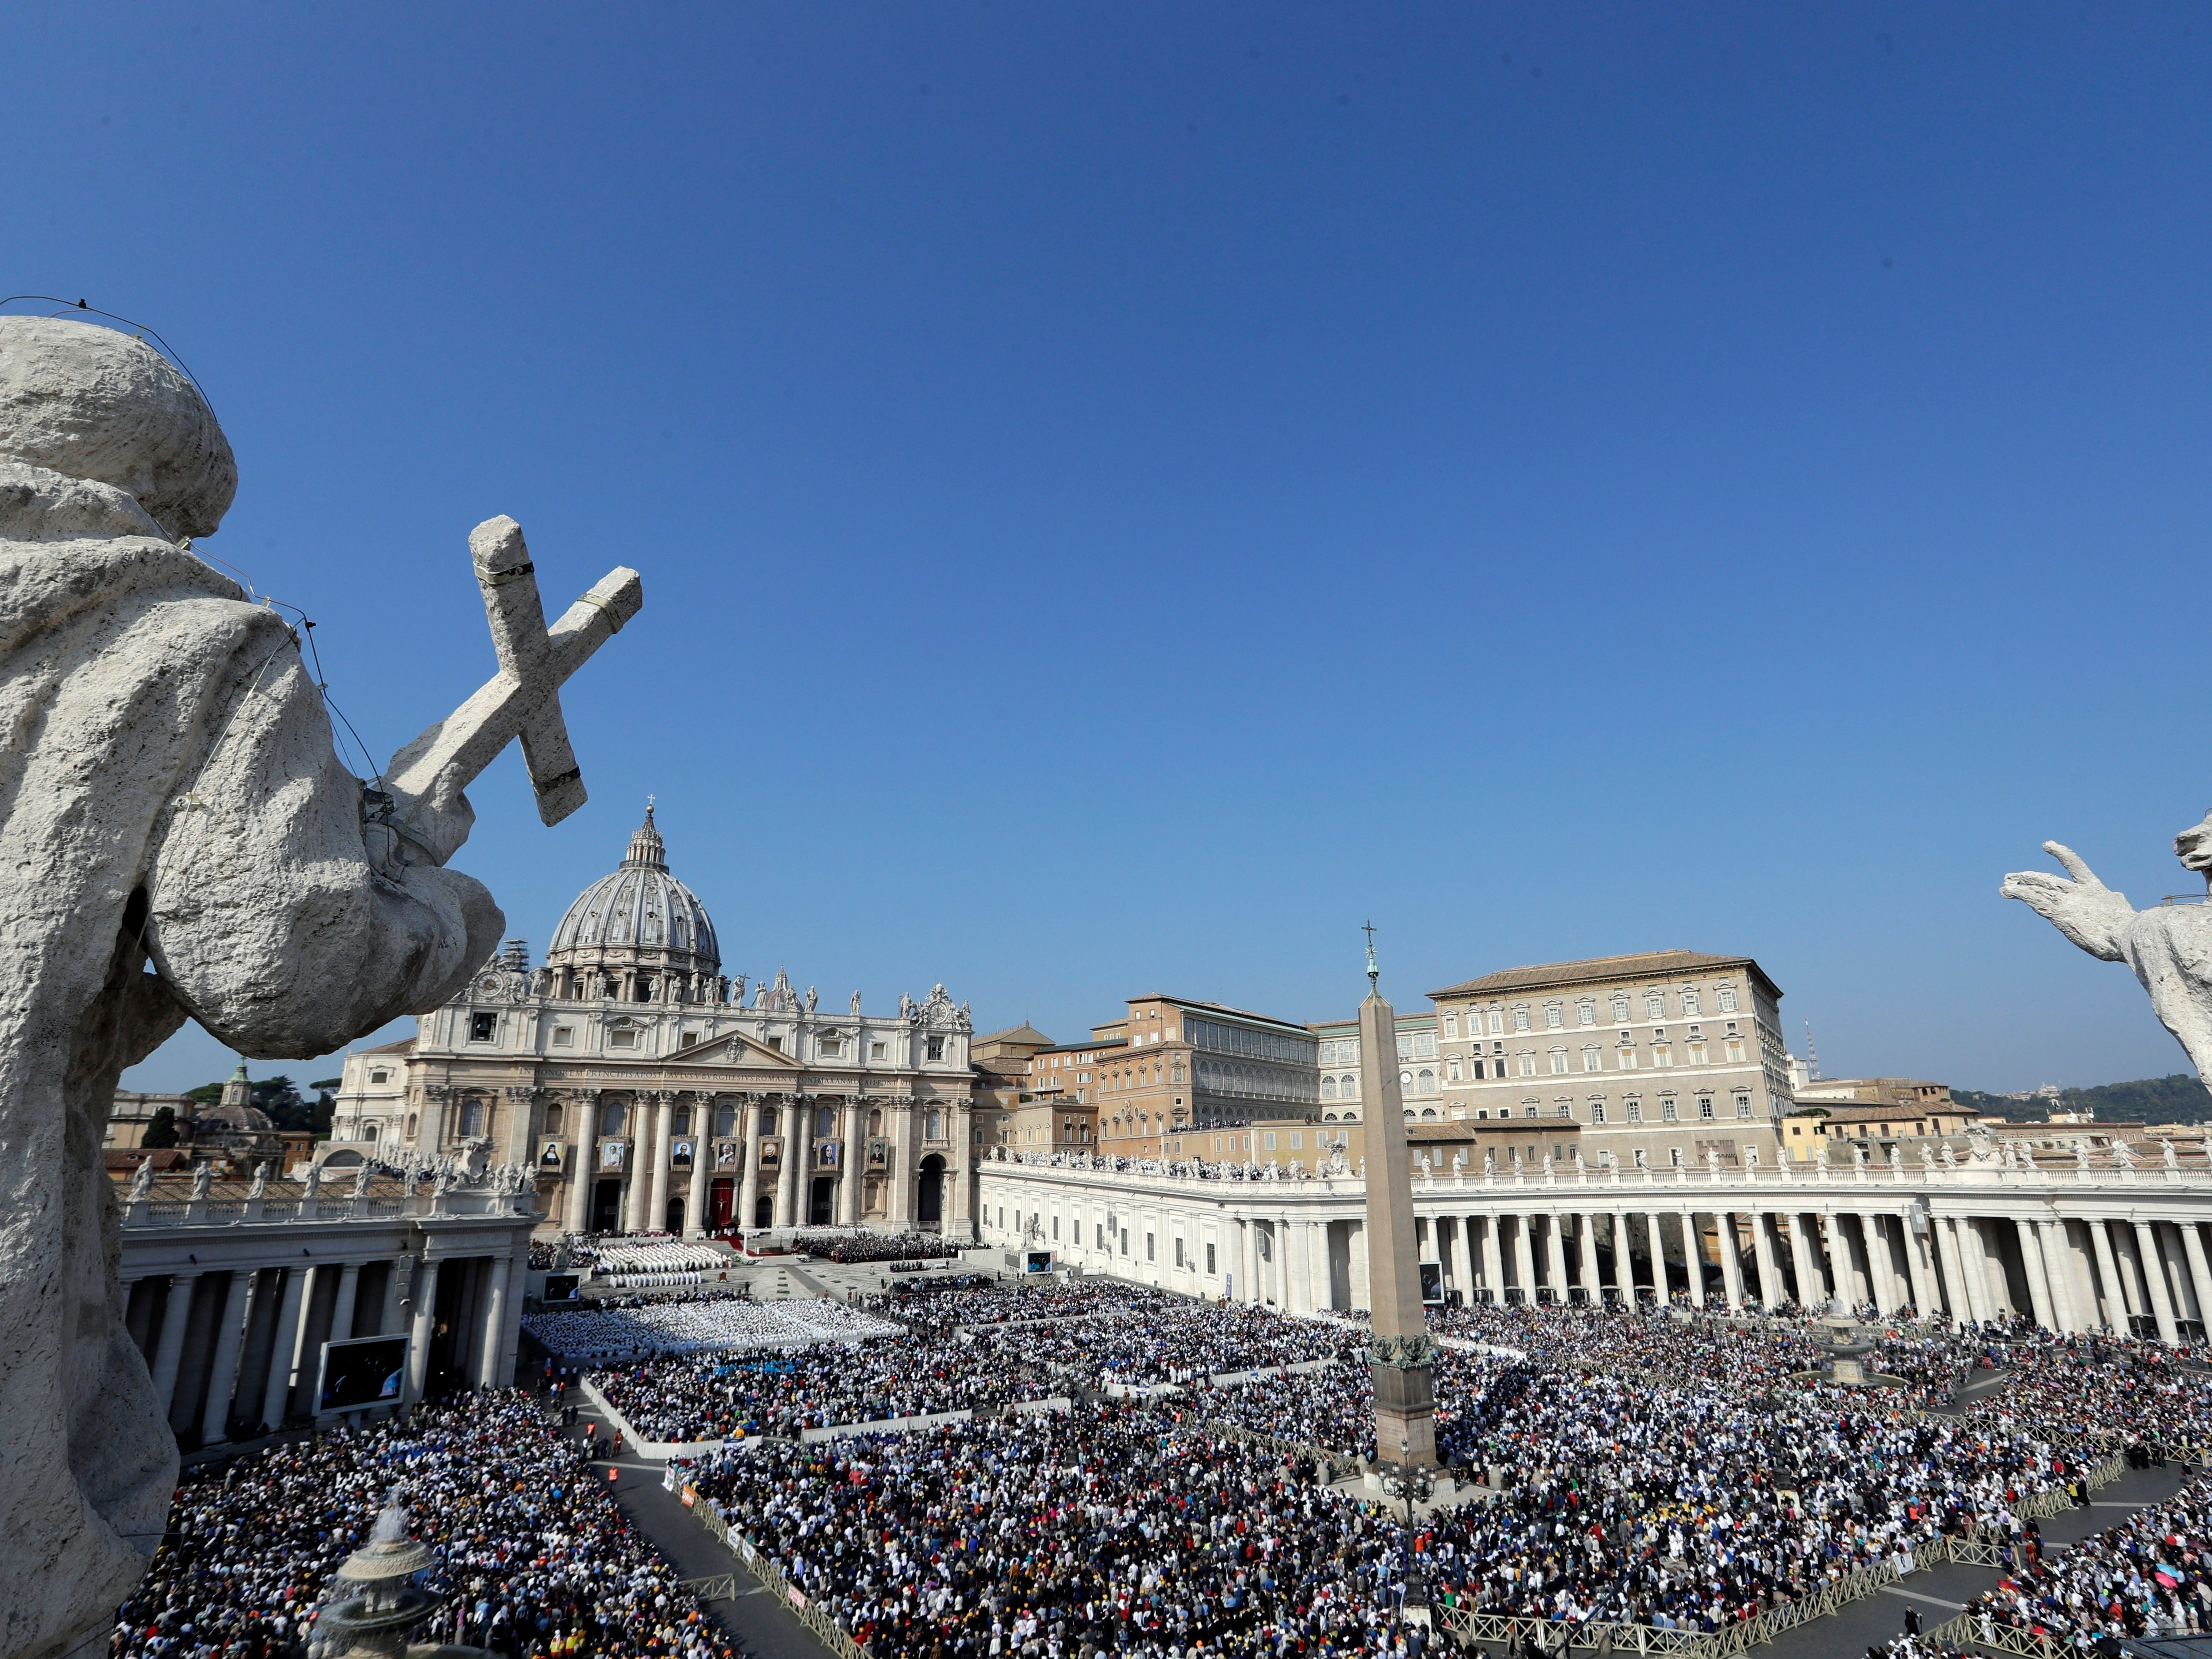 A view of St. Peter's Square during a canonization ceremony presided over by Pope Francis, at the Vatican, Sunday, Oct. 14, 2018. Pope Francis has lauded new saints Pope Paul VI and slain Salvadoran Archbishop Oscar Romero as prophets of a church that looks out for the poor as he presided over a canonization ceremony.